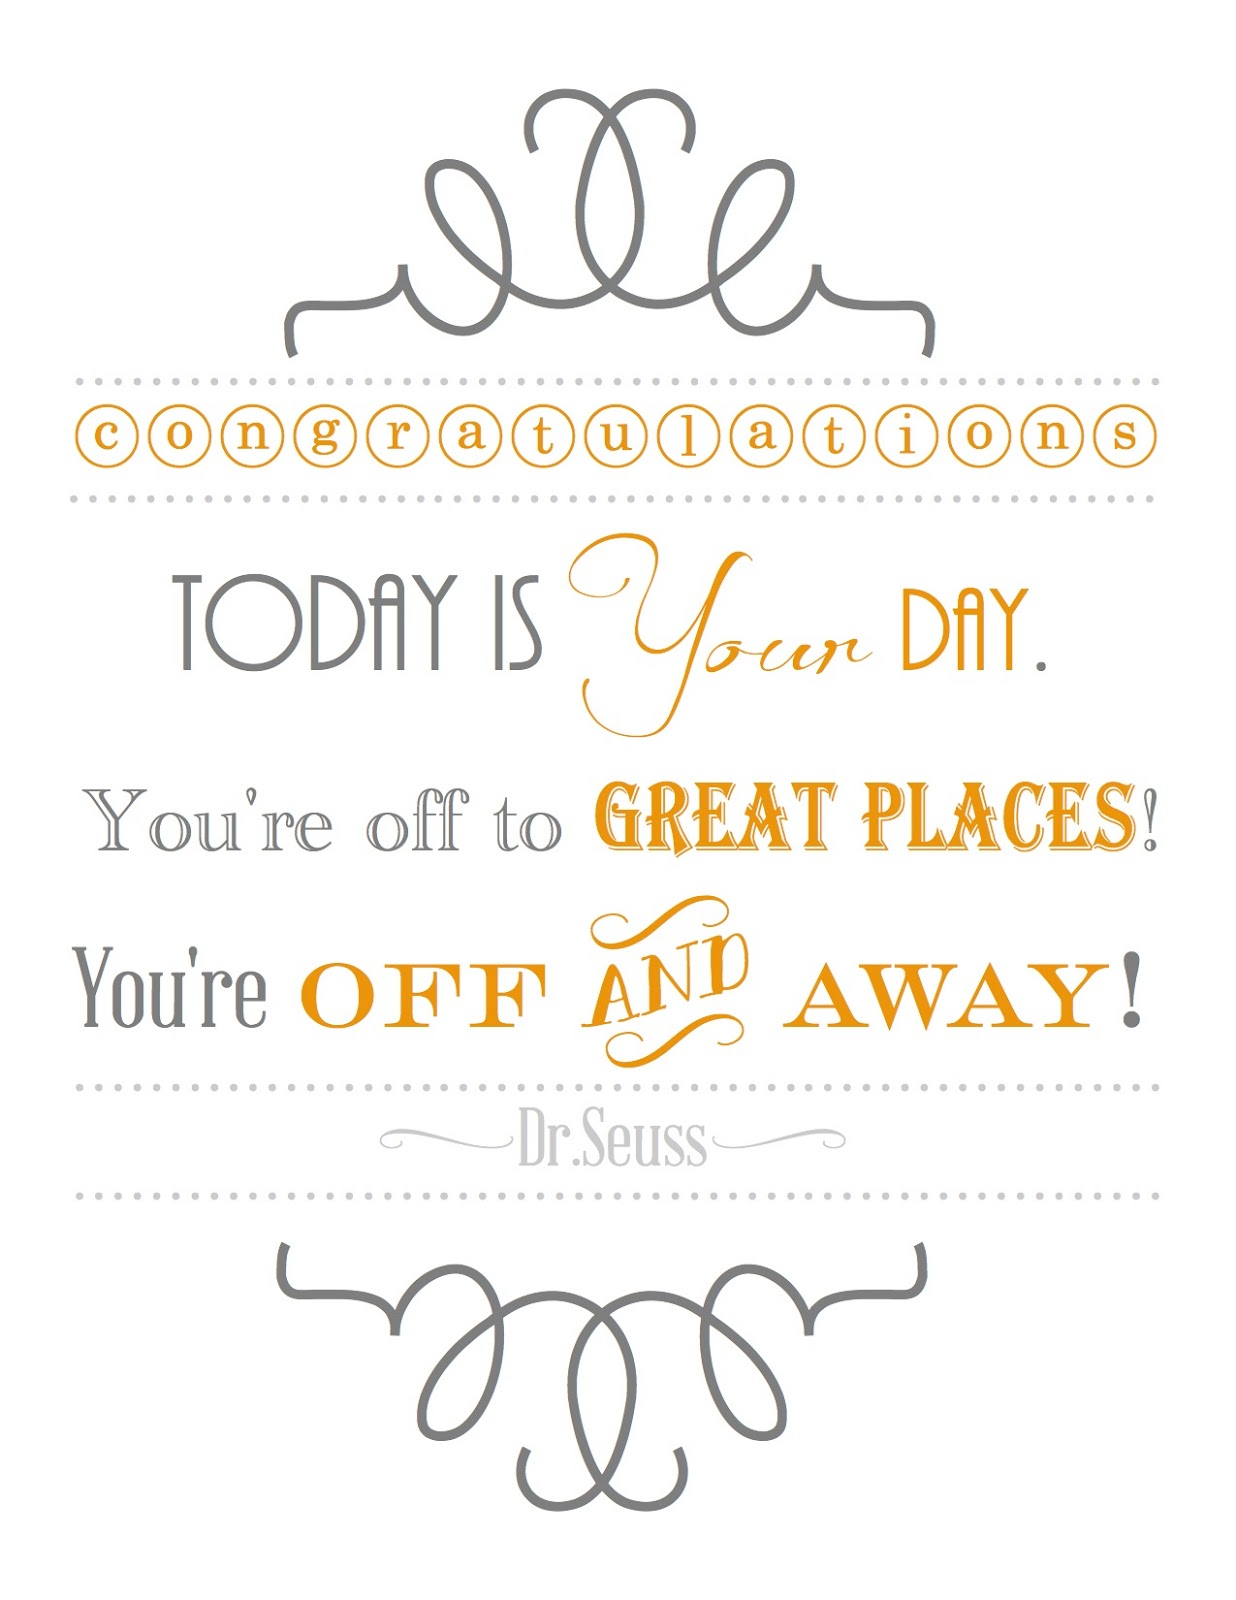 It is a graphic of Printable Dr Seuss Quotes intended for person